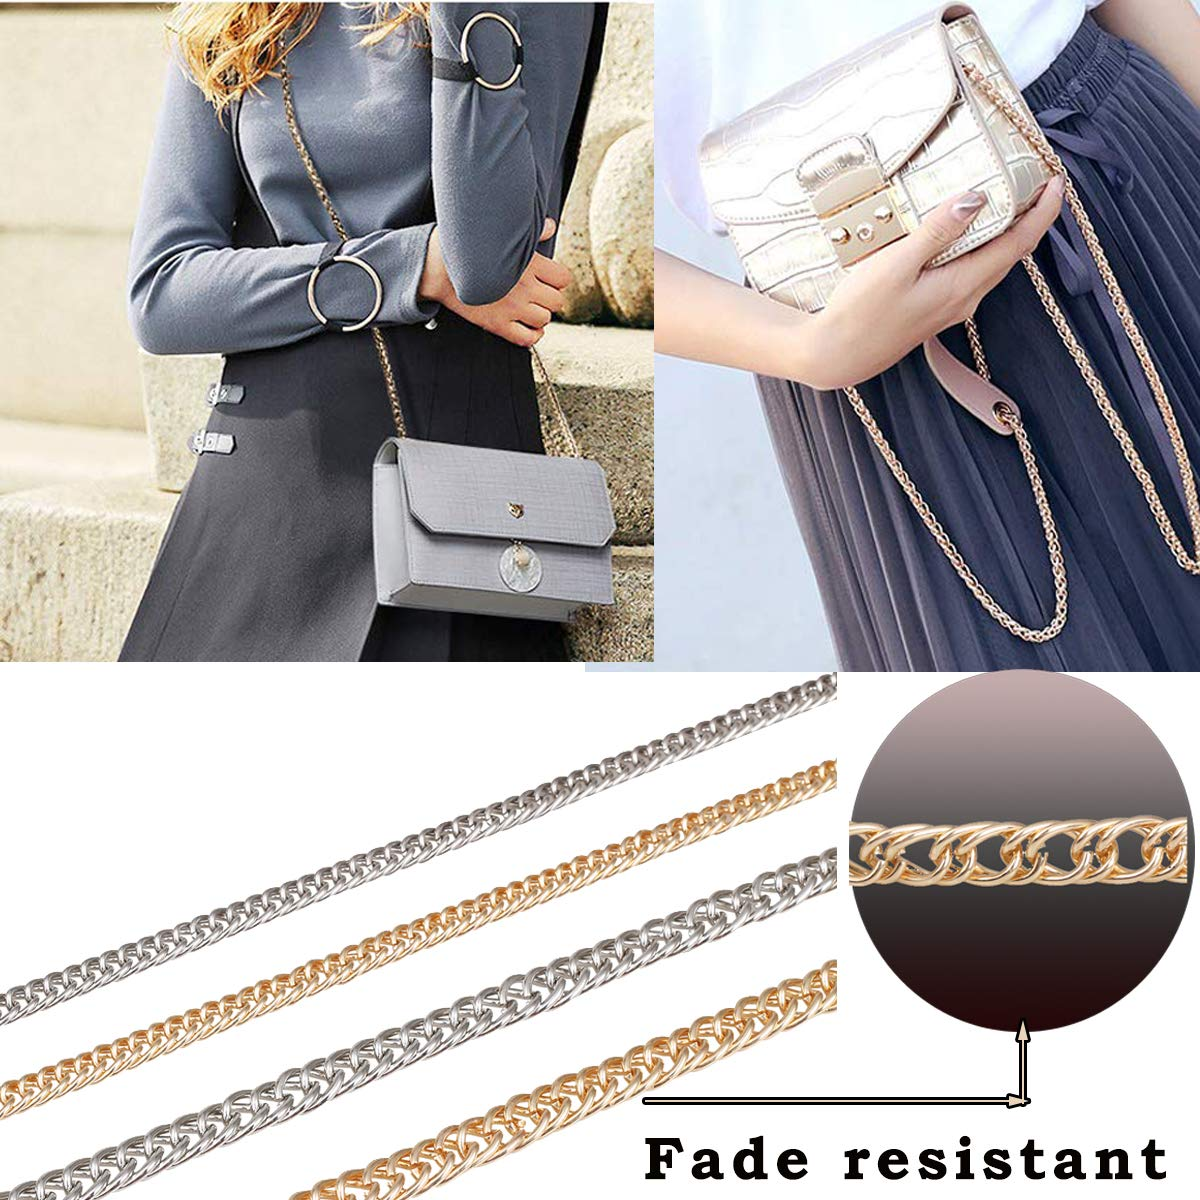 DIY Metal Chain Strap Replacement DIY Purse Chain Strap with Buckles for for Shoulder Cross Body Bag Handbag Purse Clutch Wallet Satchel Tote Chains Accessories,10mm Width Sliver